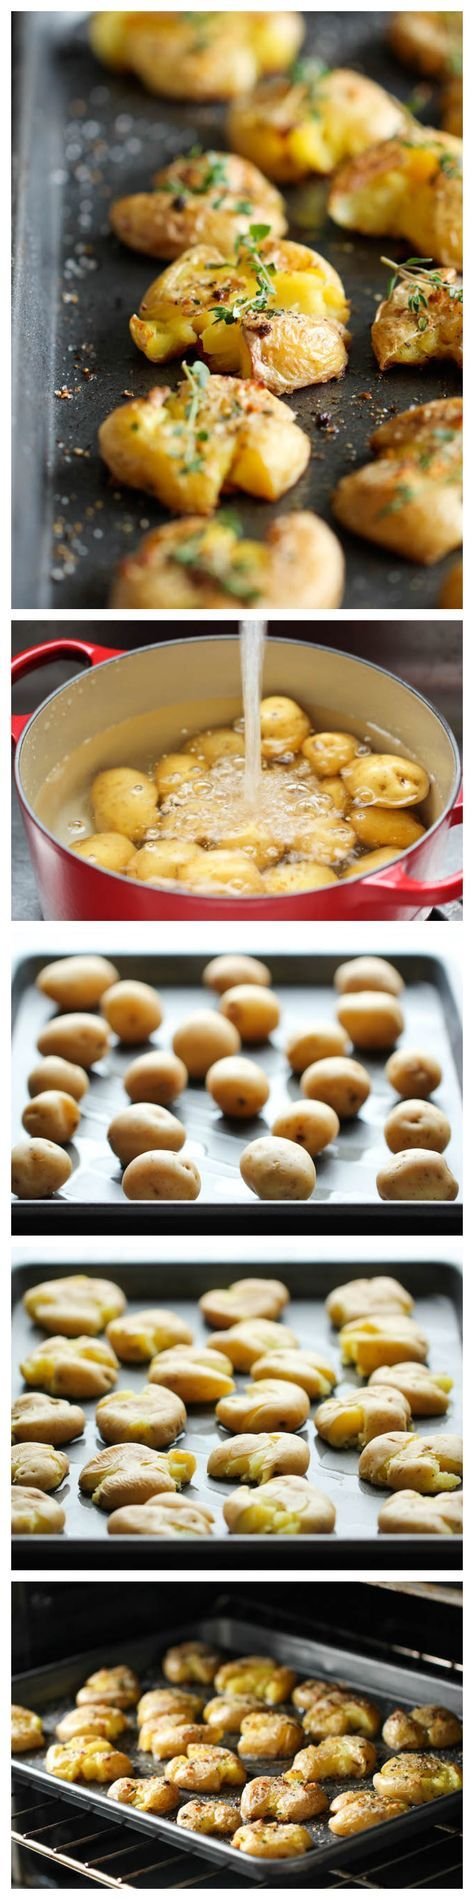 Garlic Smashed Potatoes - These potatoes are incredibly tender on the inside yet amazingly crisp on the outside! Dutch yellow potatoes from melissa's produce. #DYP